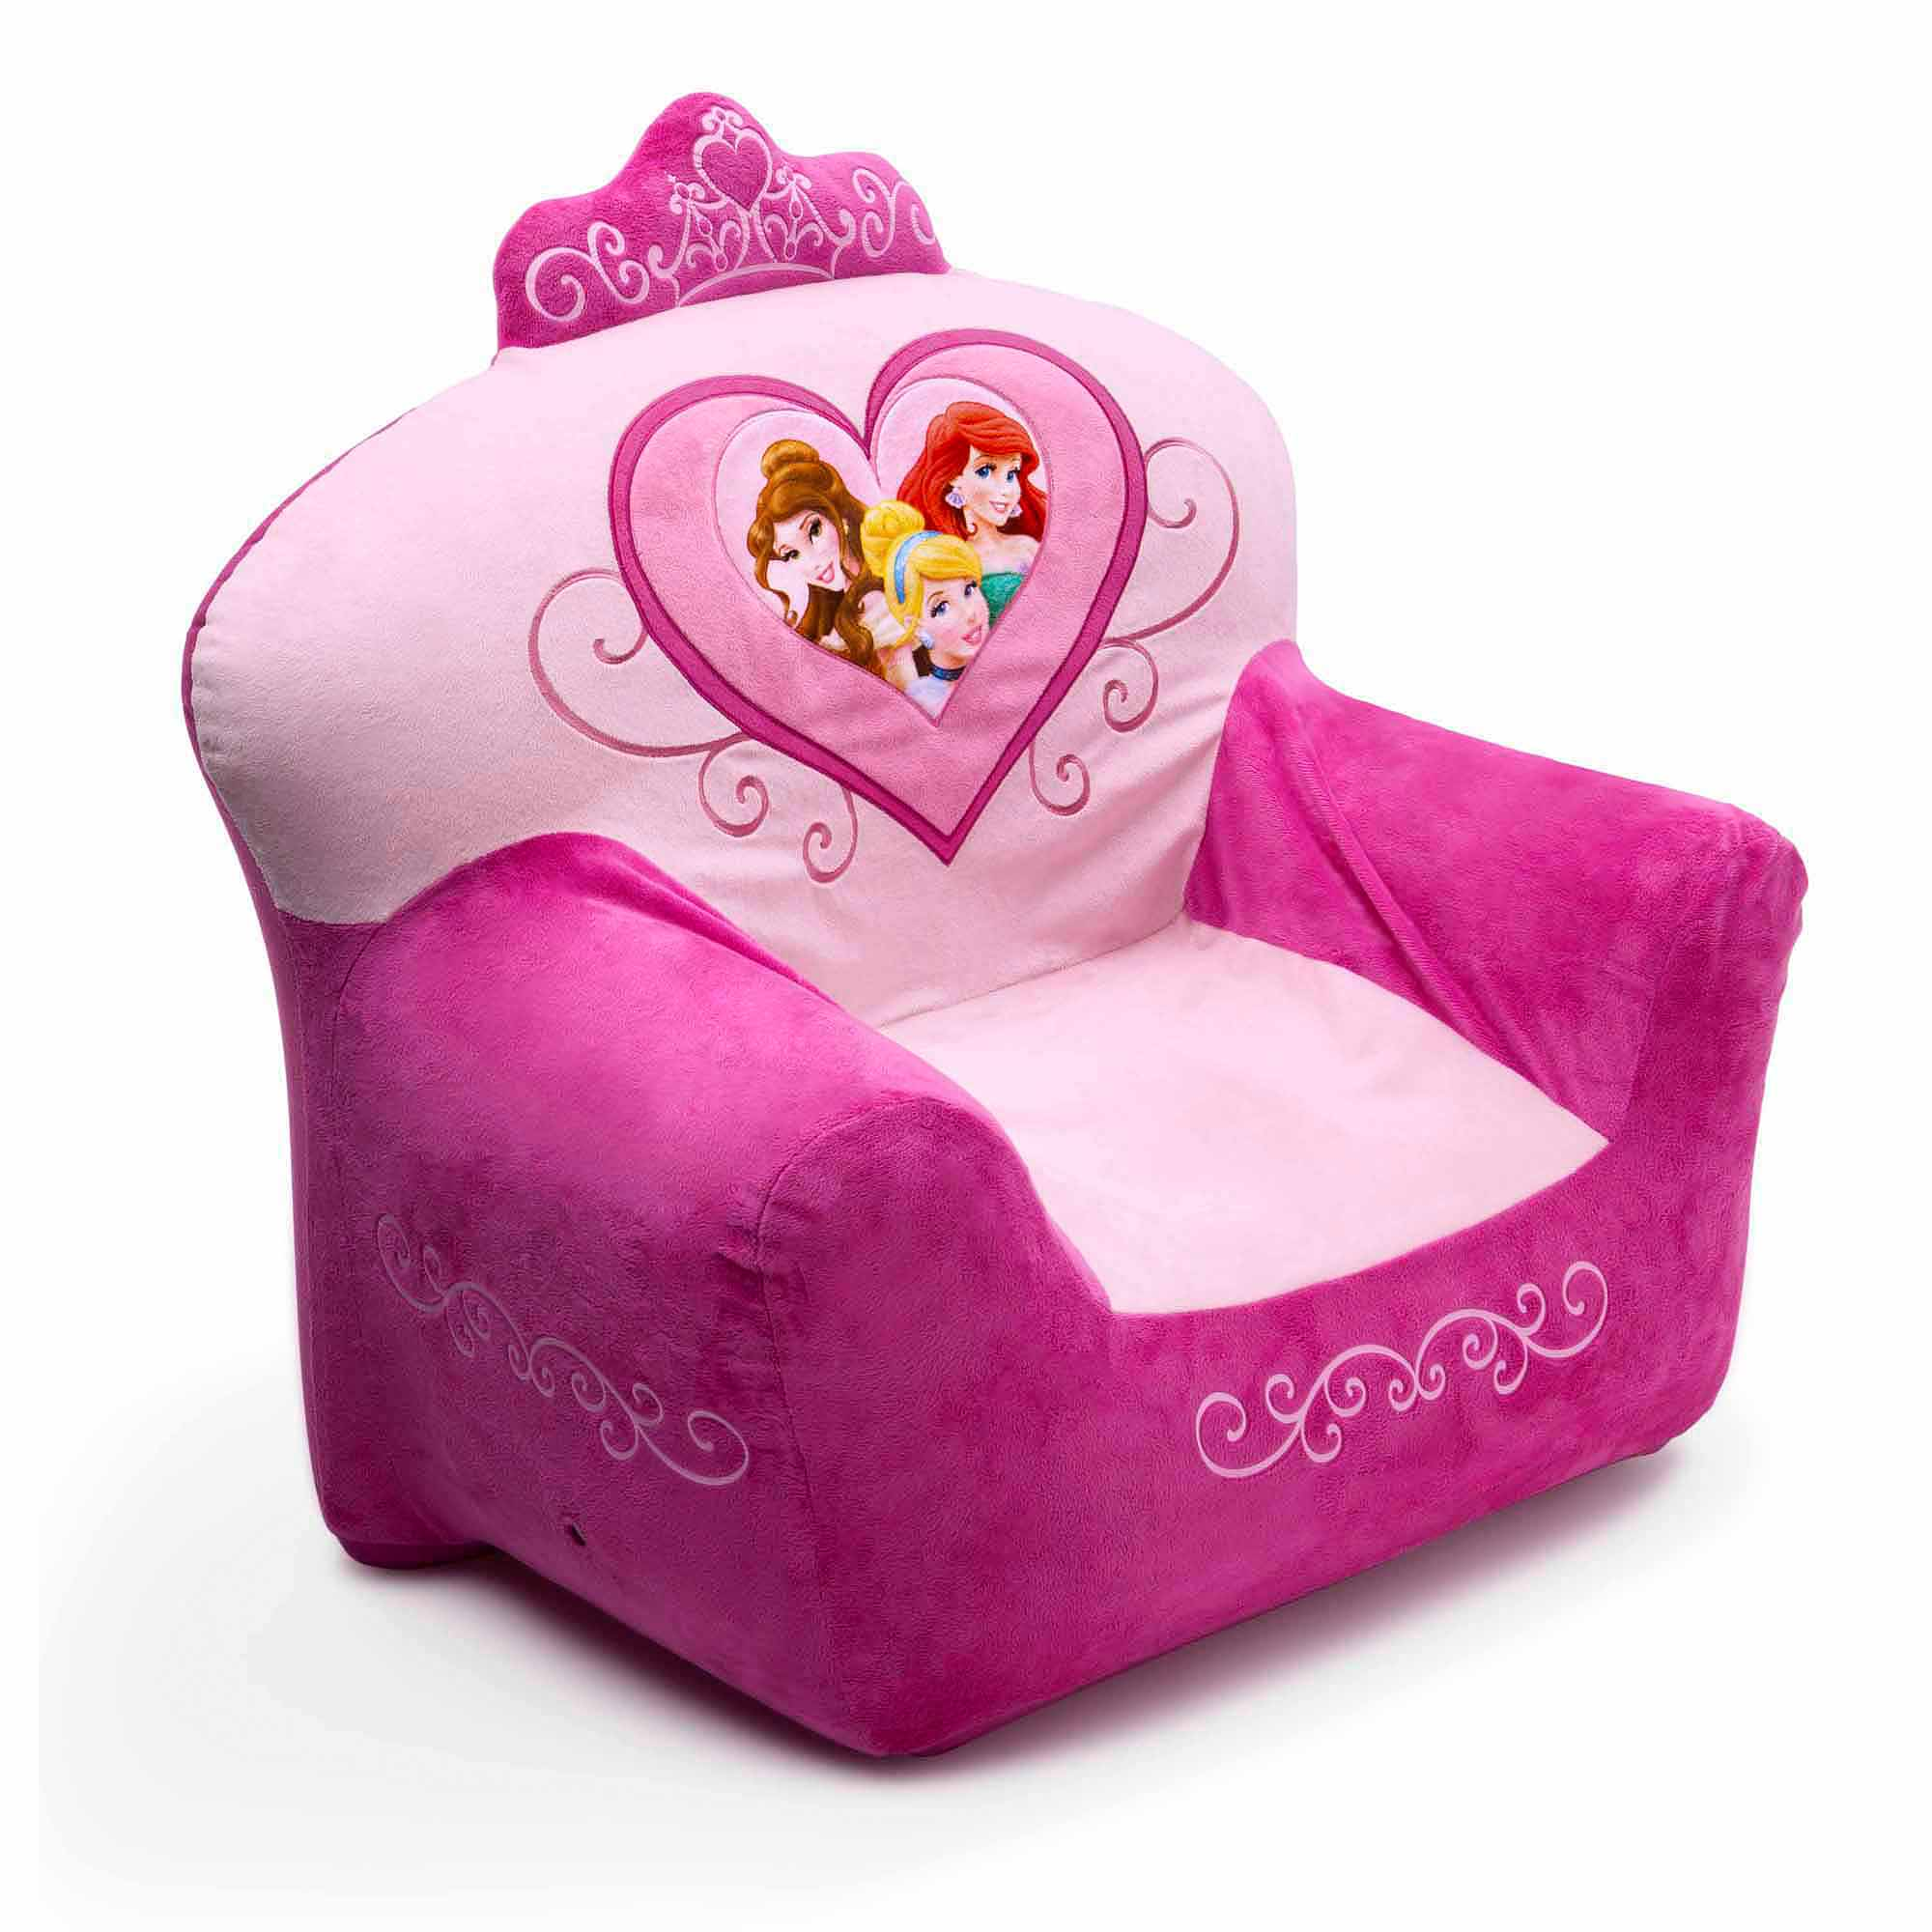 sc 1 st  Walmart & Disney Princess Club Chair - Walmart.com